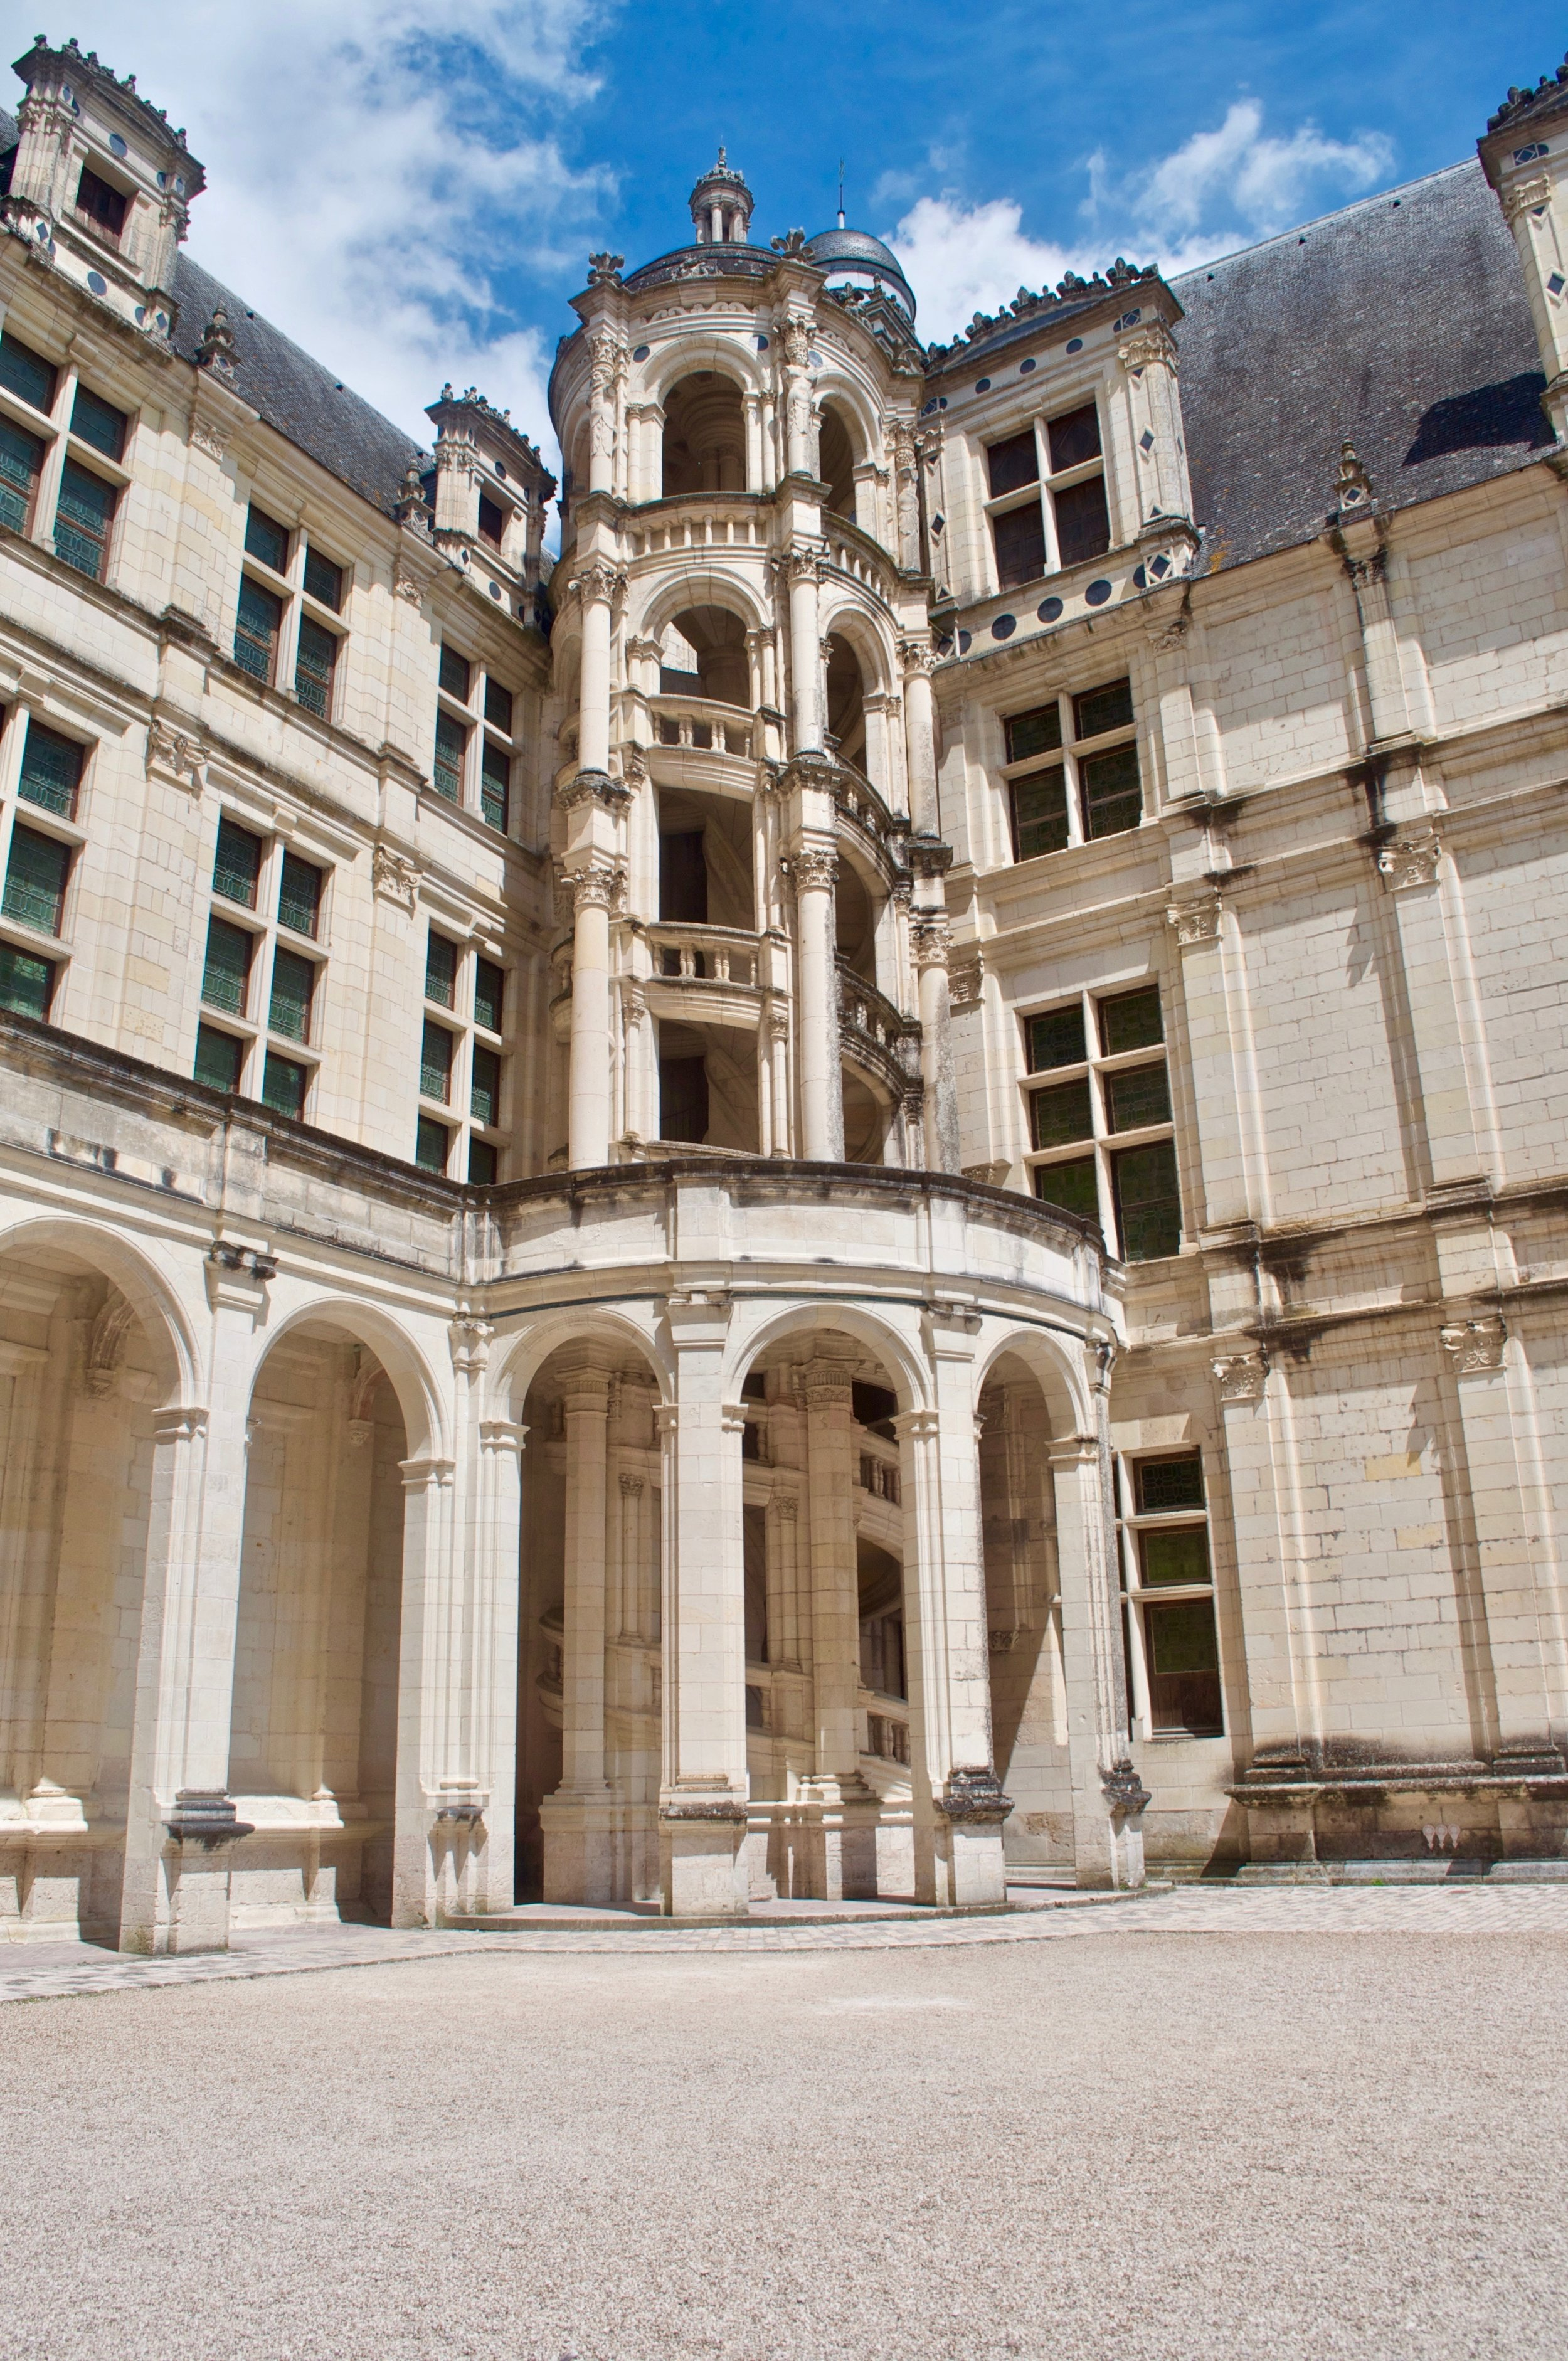 Chambord Chateau - 5 Most Magnificent Castles of the Loire Valley - A Happy Passport #chateau #castle #france #chambord